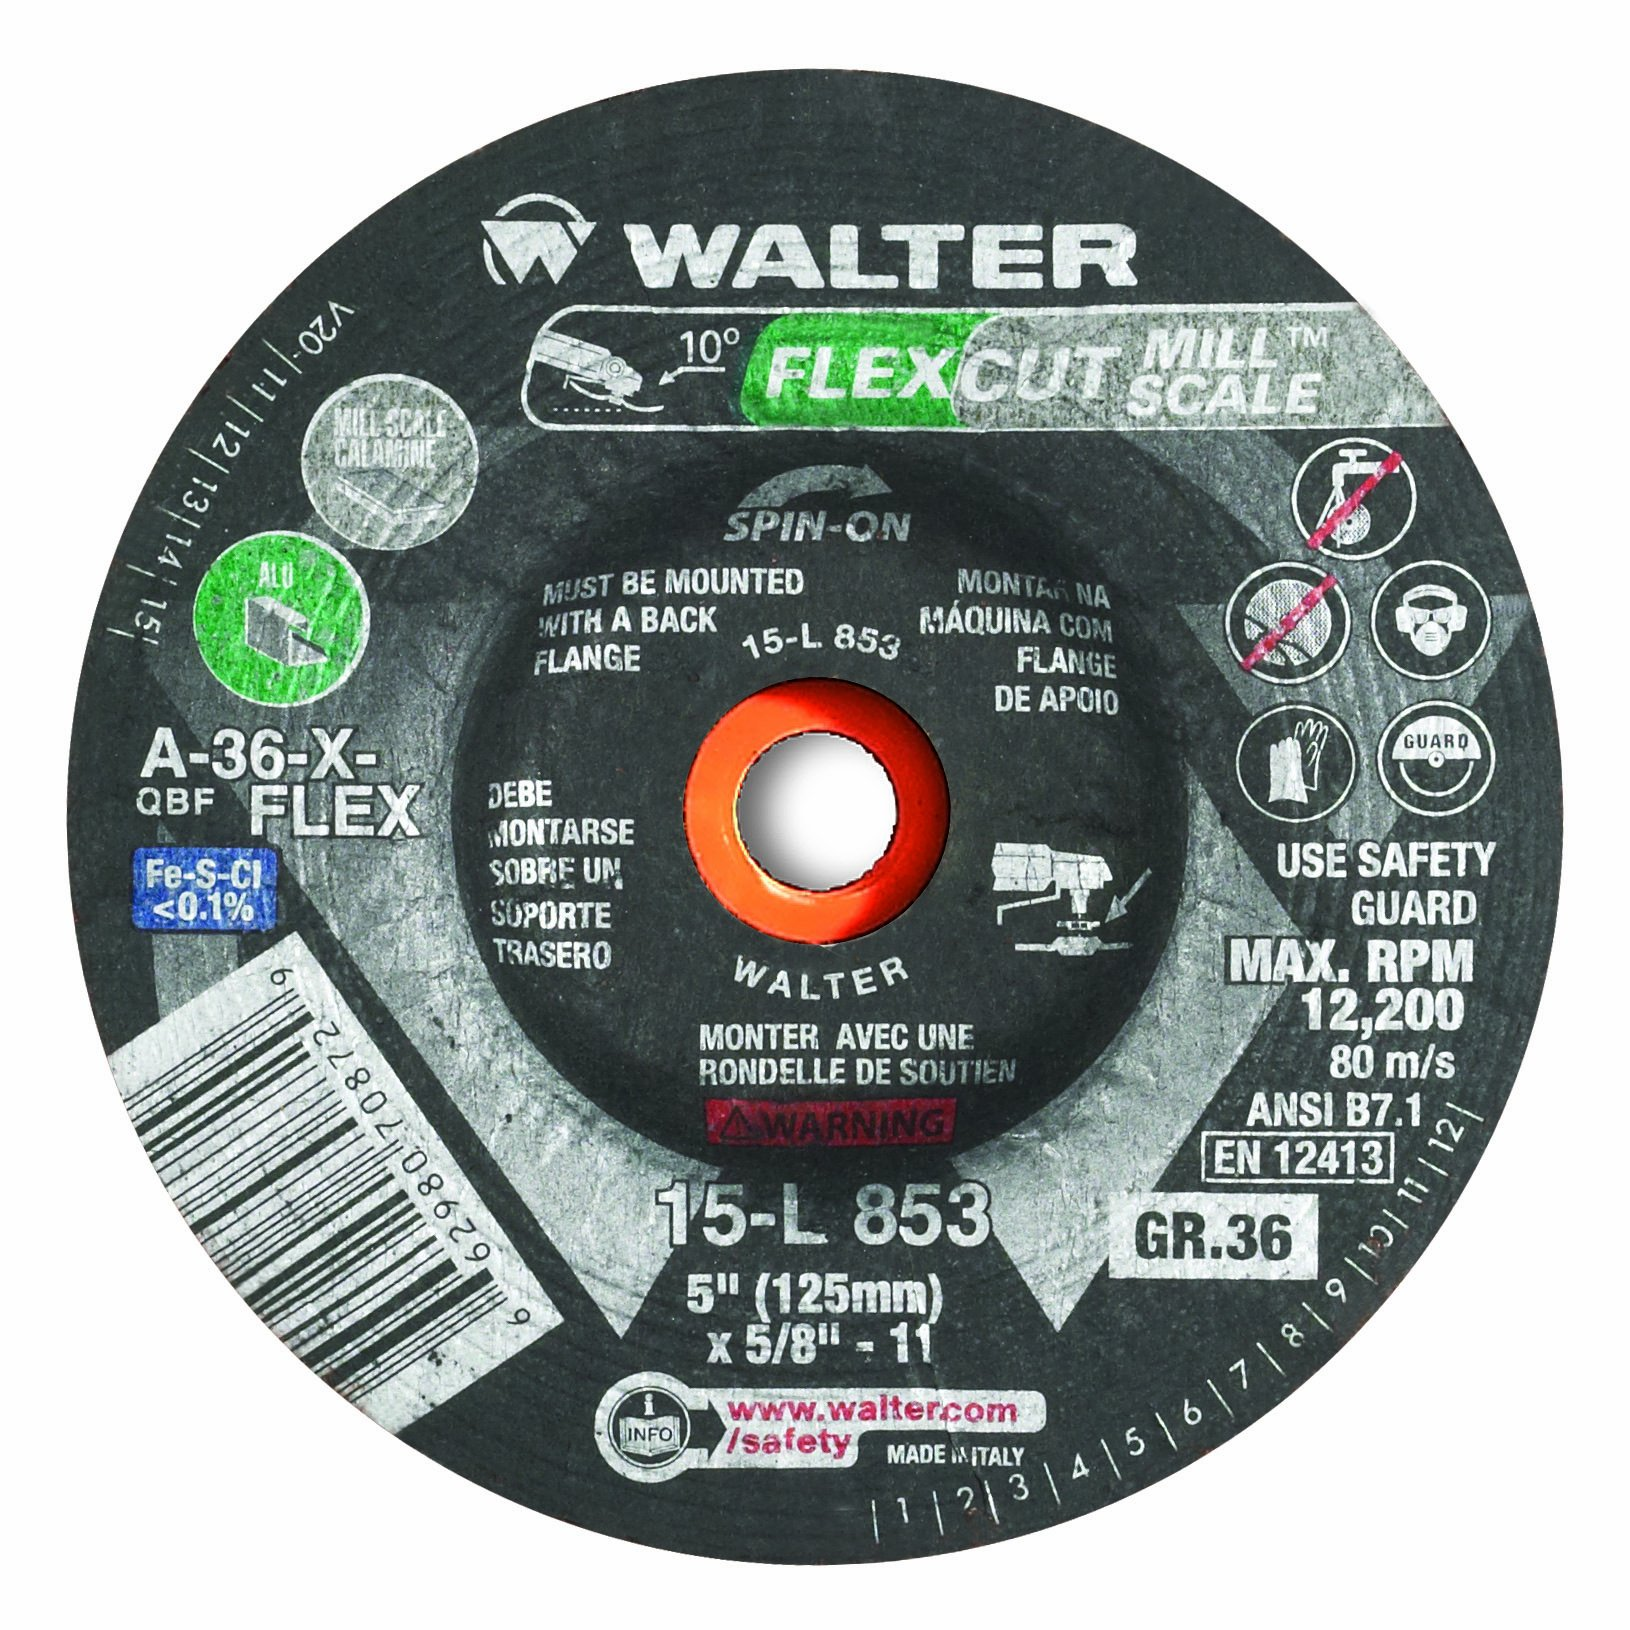 Walter Flexcut Mill Scale Premium Performance Flexible Grinding Wheel, Threaded Hole, Aluminum Oxide, 4-1/2'' Diameter, 3/16'' Thick, 5/8''-11 Arbor, Grit A-36-FLEX (Pack of 25)